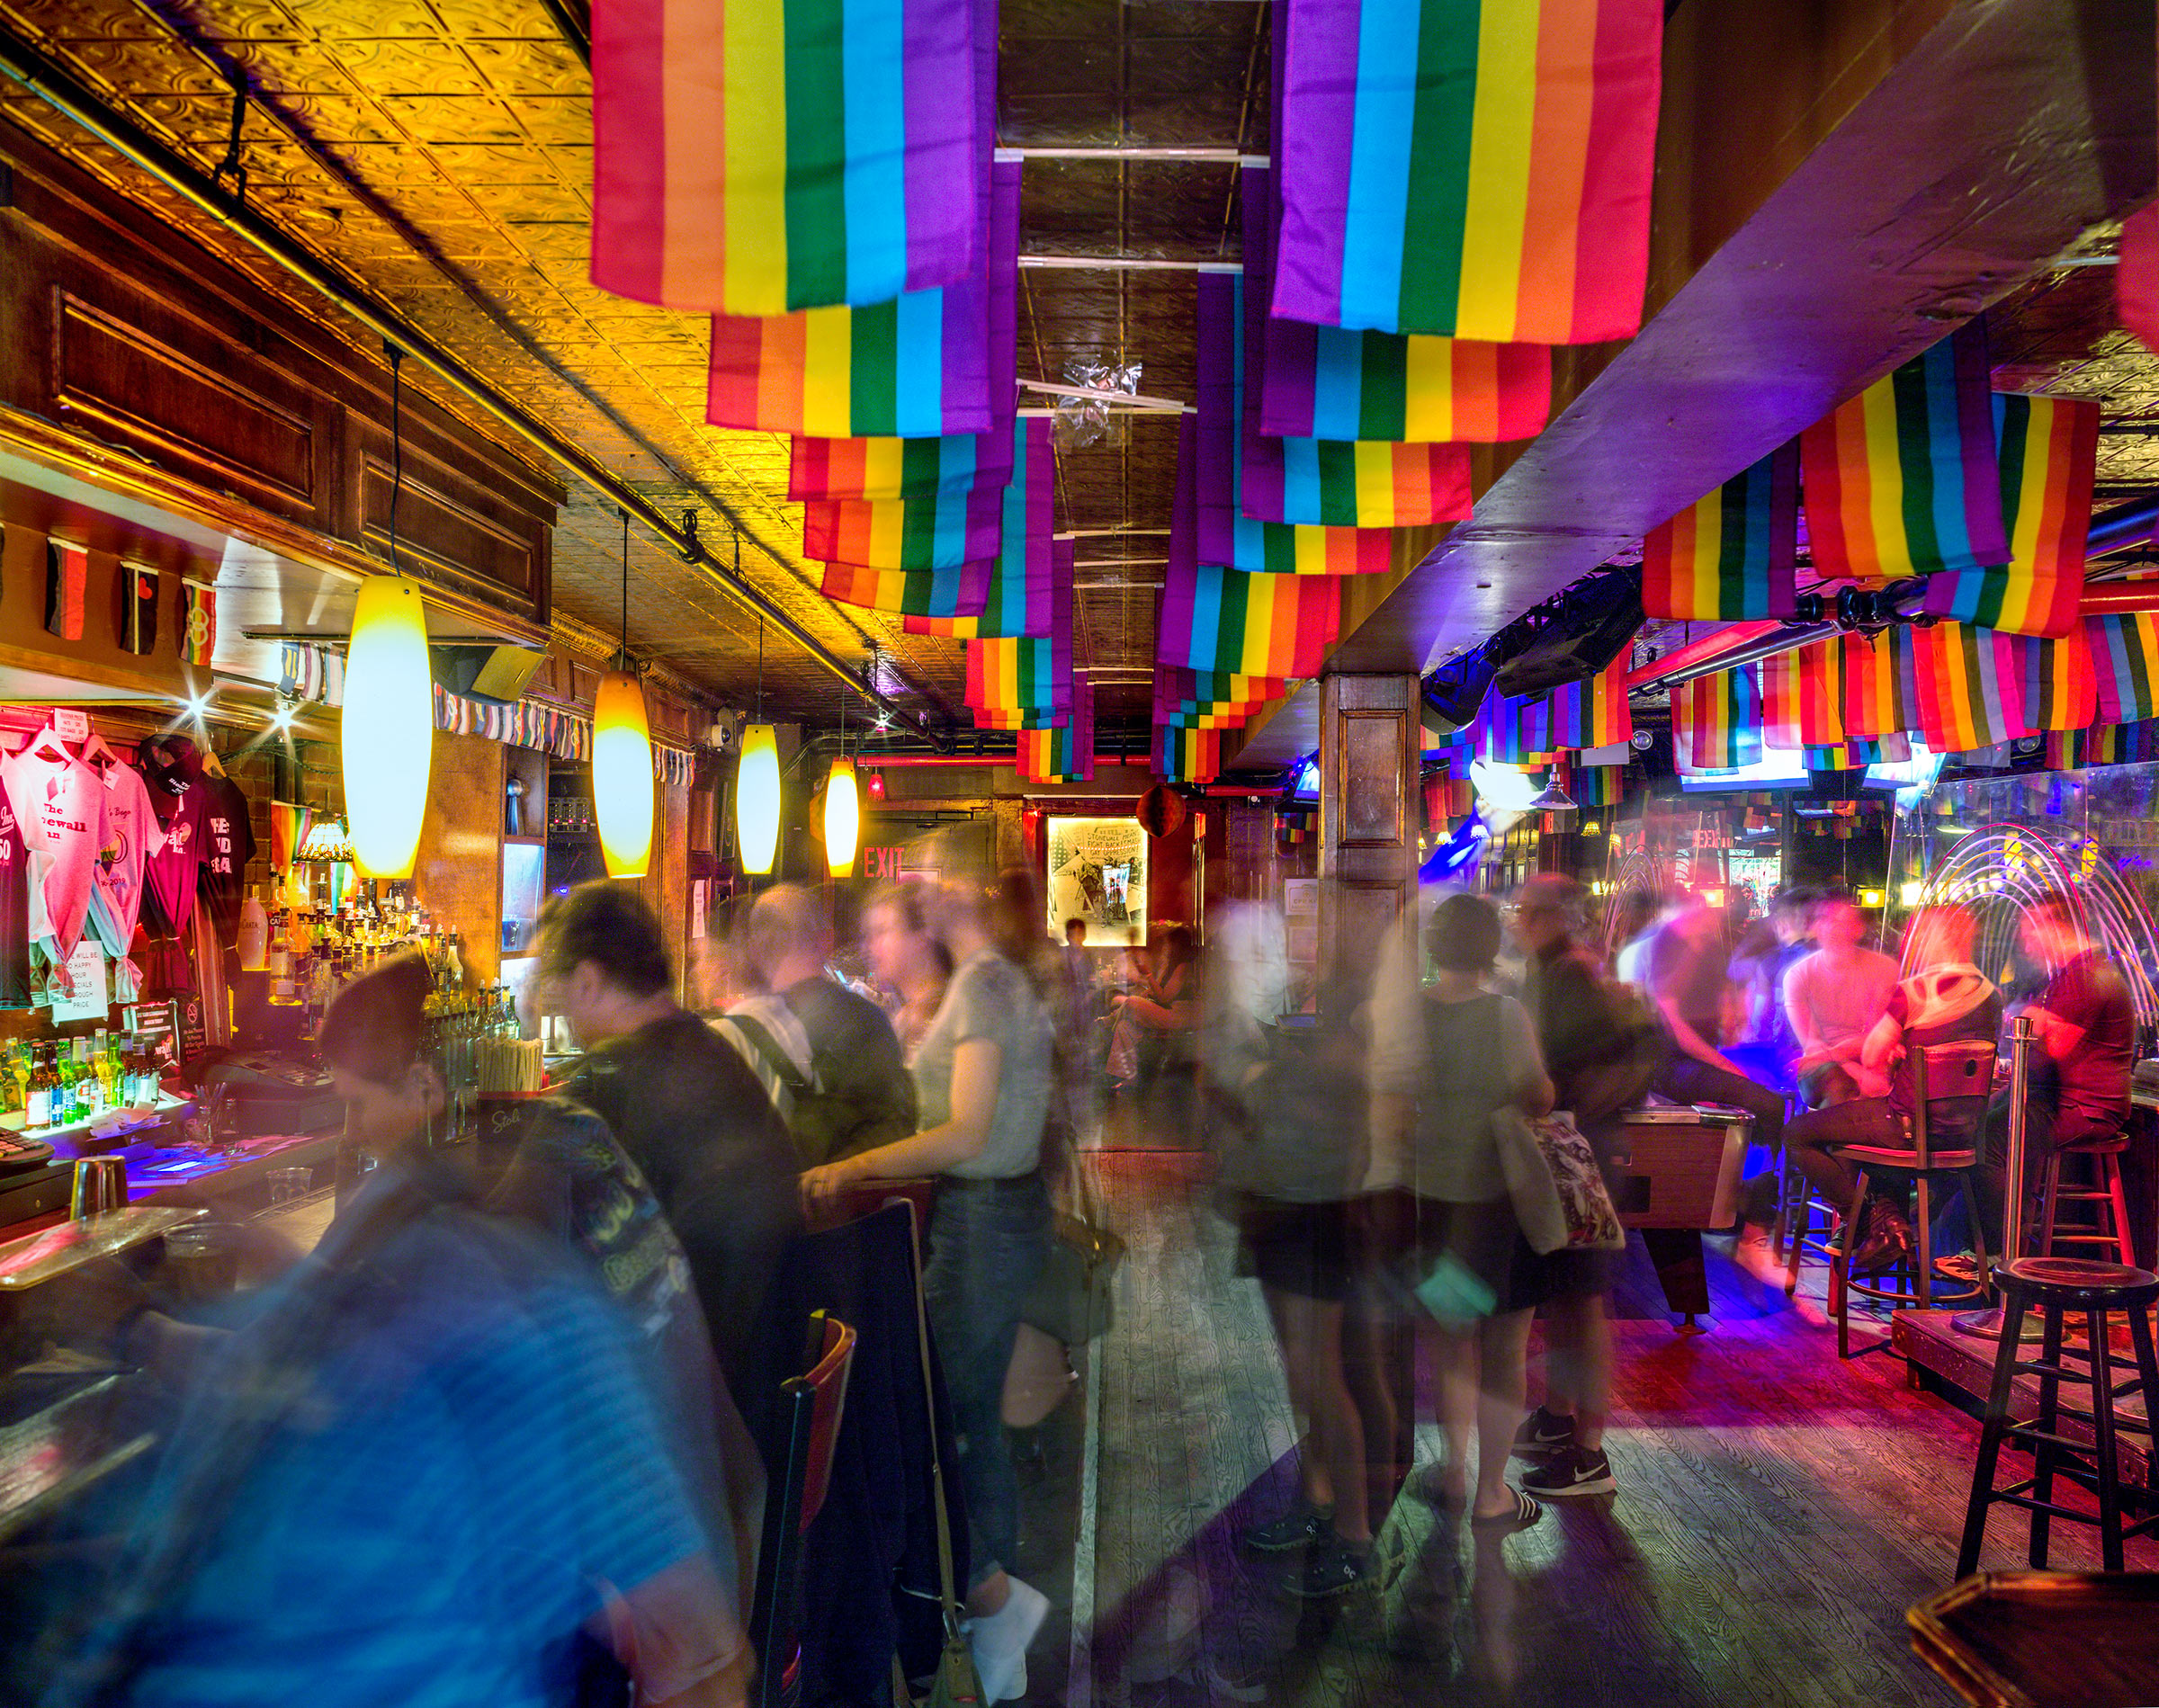 Interior of The Stonewall Inn in New York City.